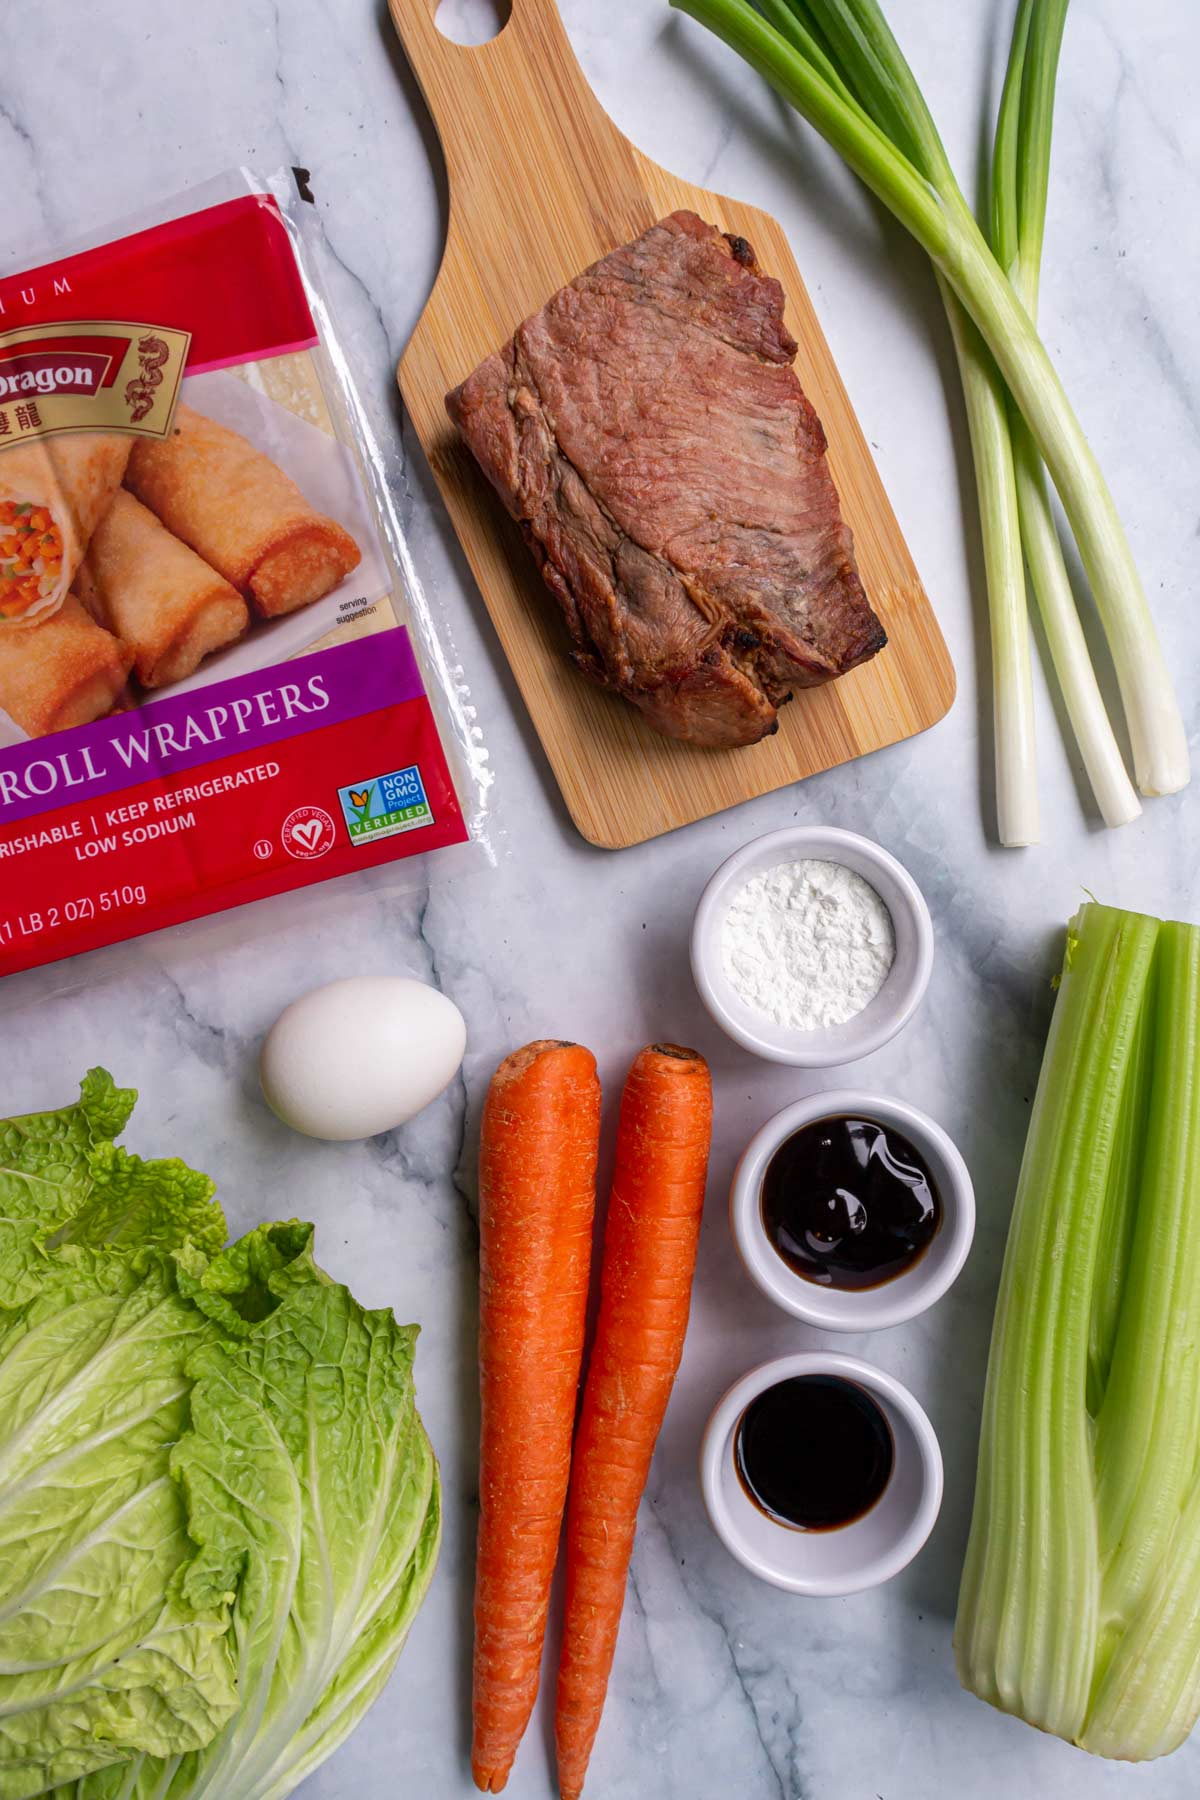 Ingredients for pork and vegetable egg rolls on a white marble background.